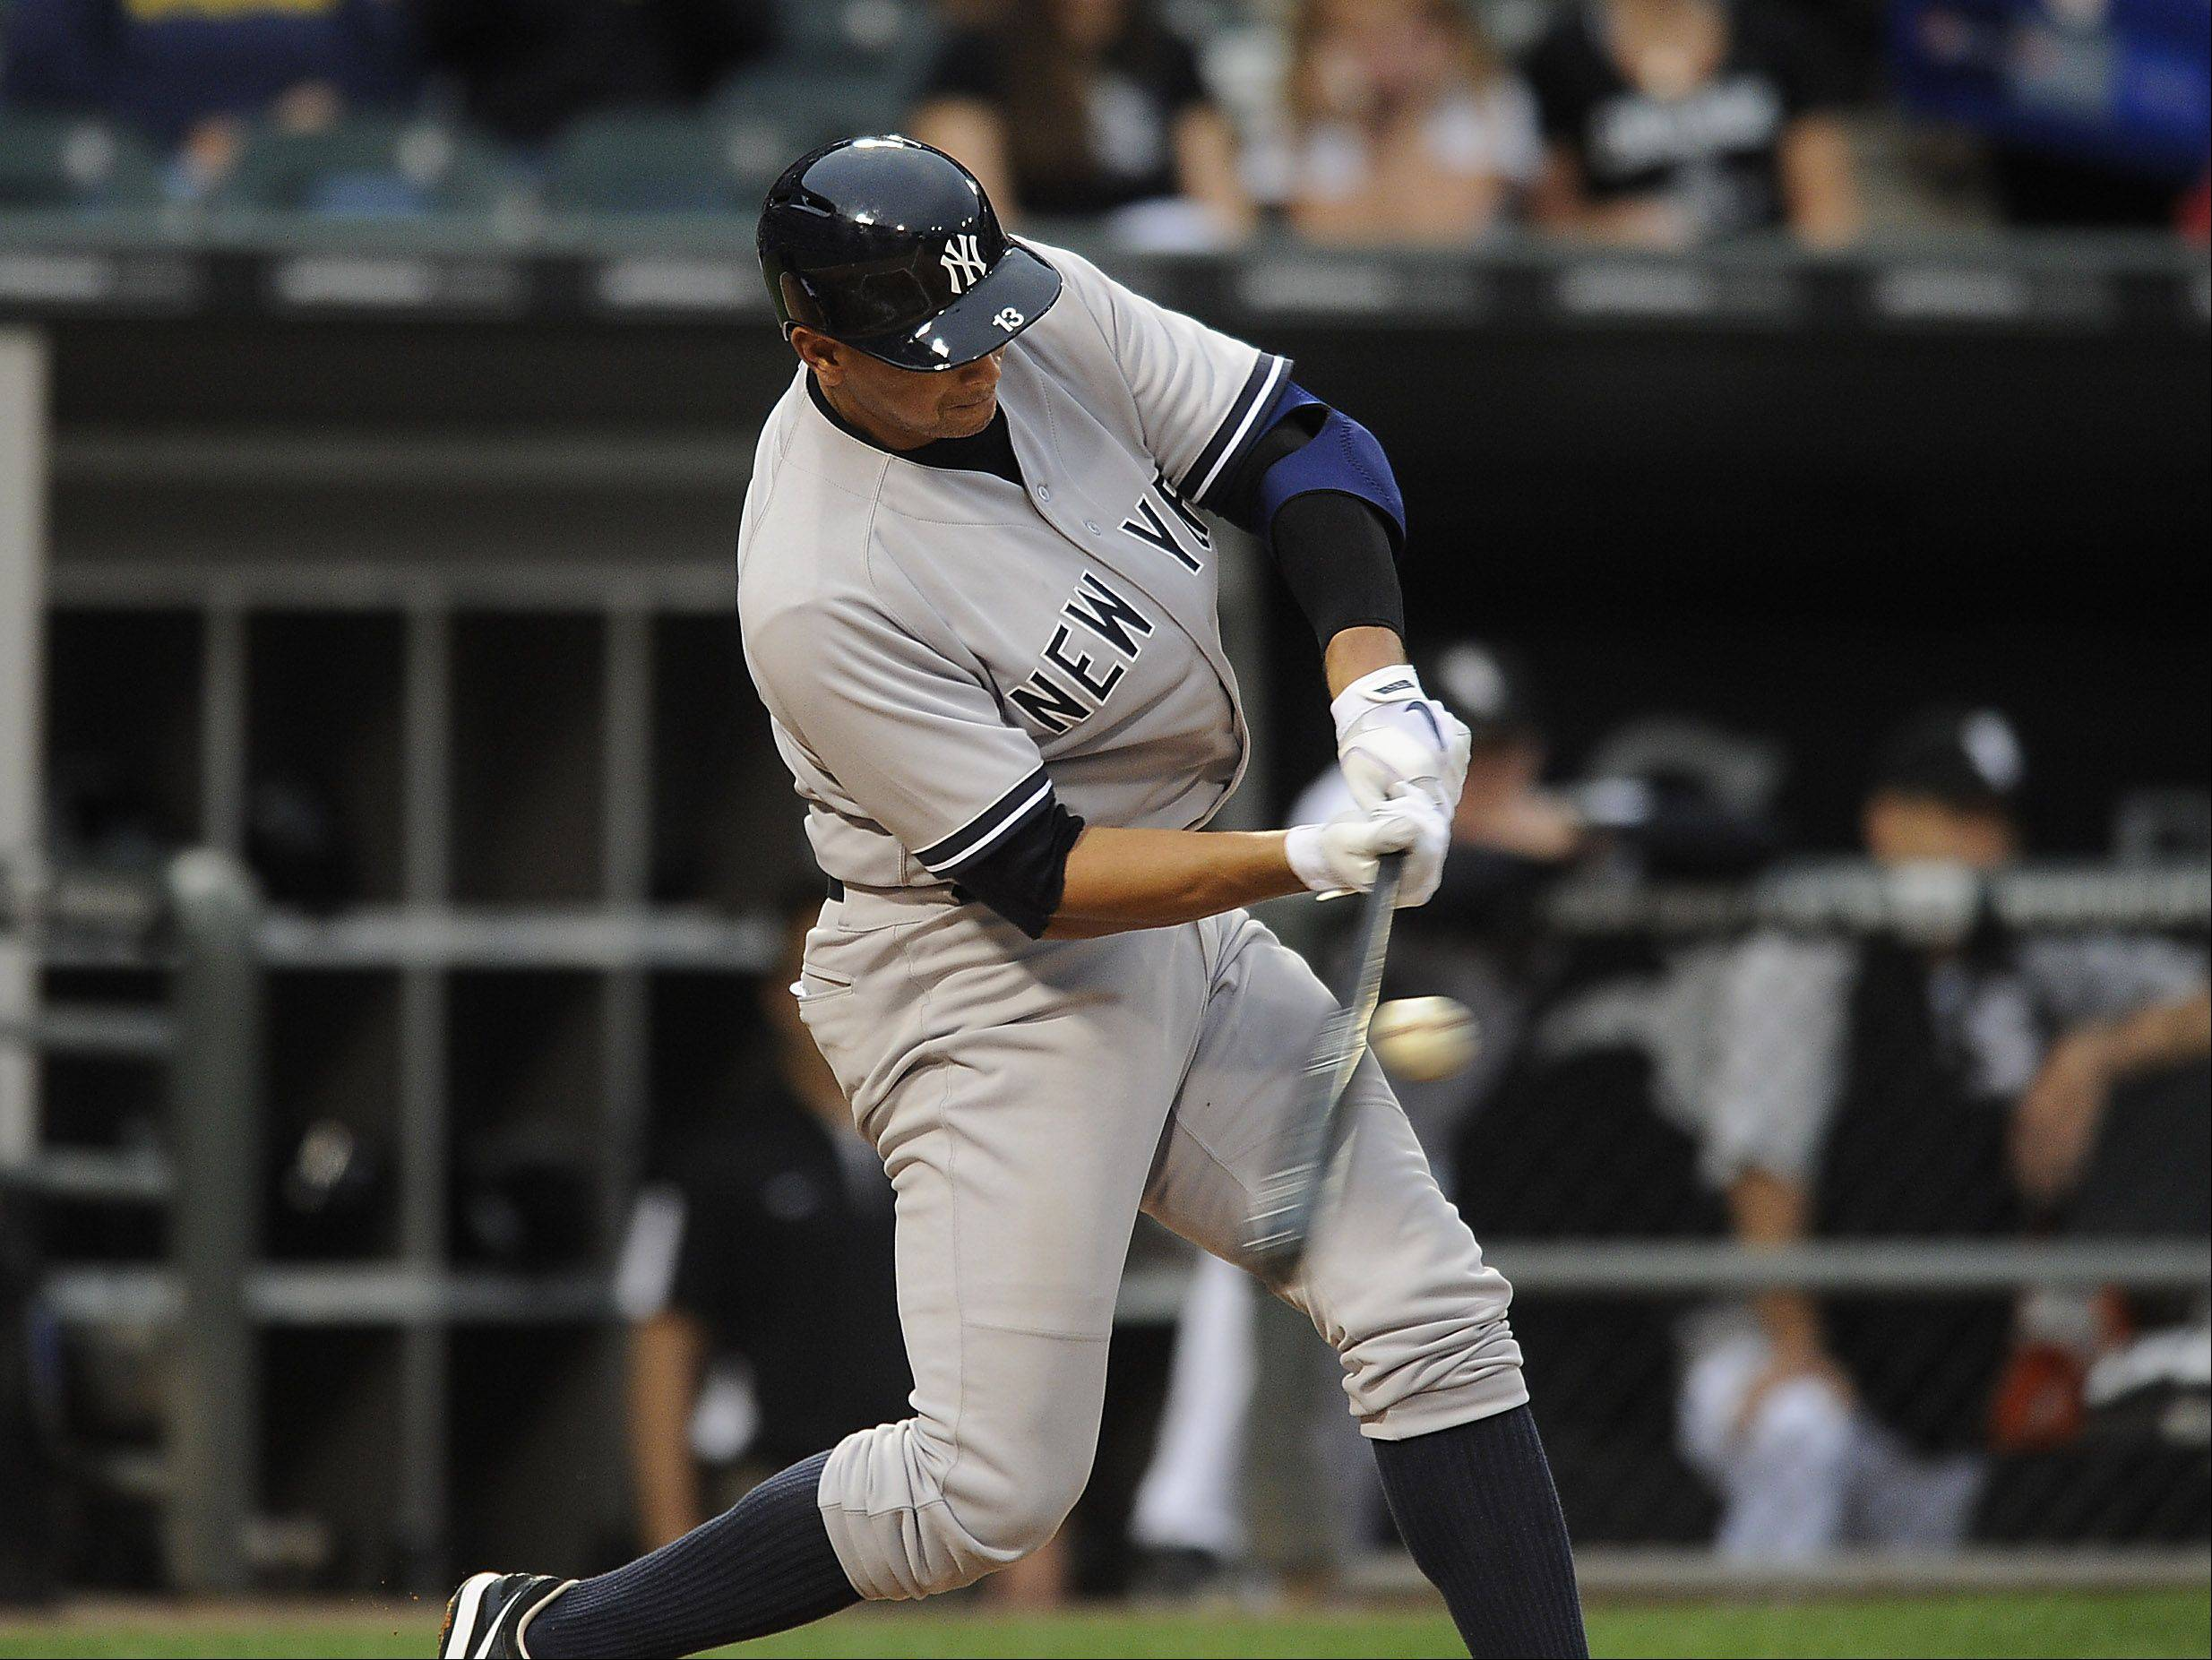 New York Yankees Alex Rodriguez hits a single leading off in the second inning at Cellular Field in Chicago on Monday.